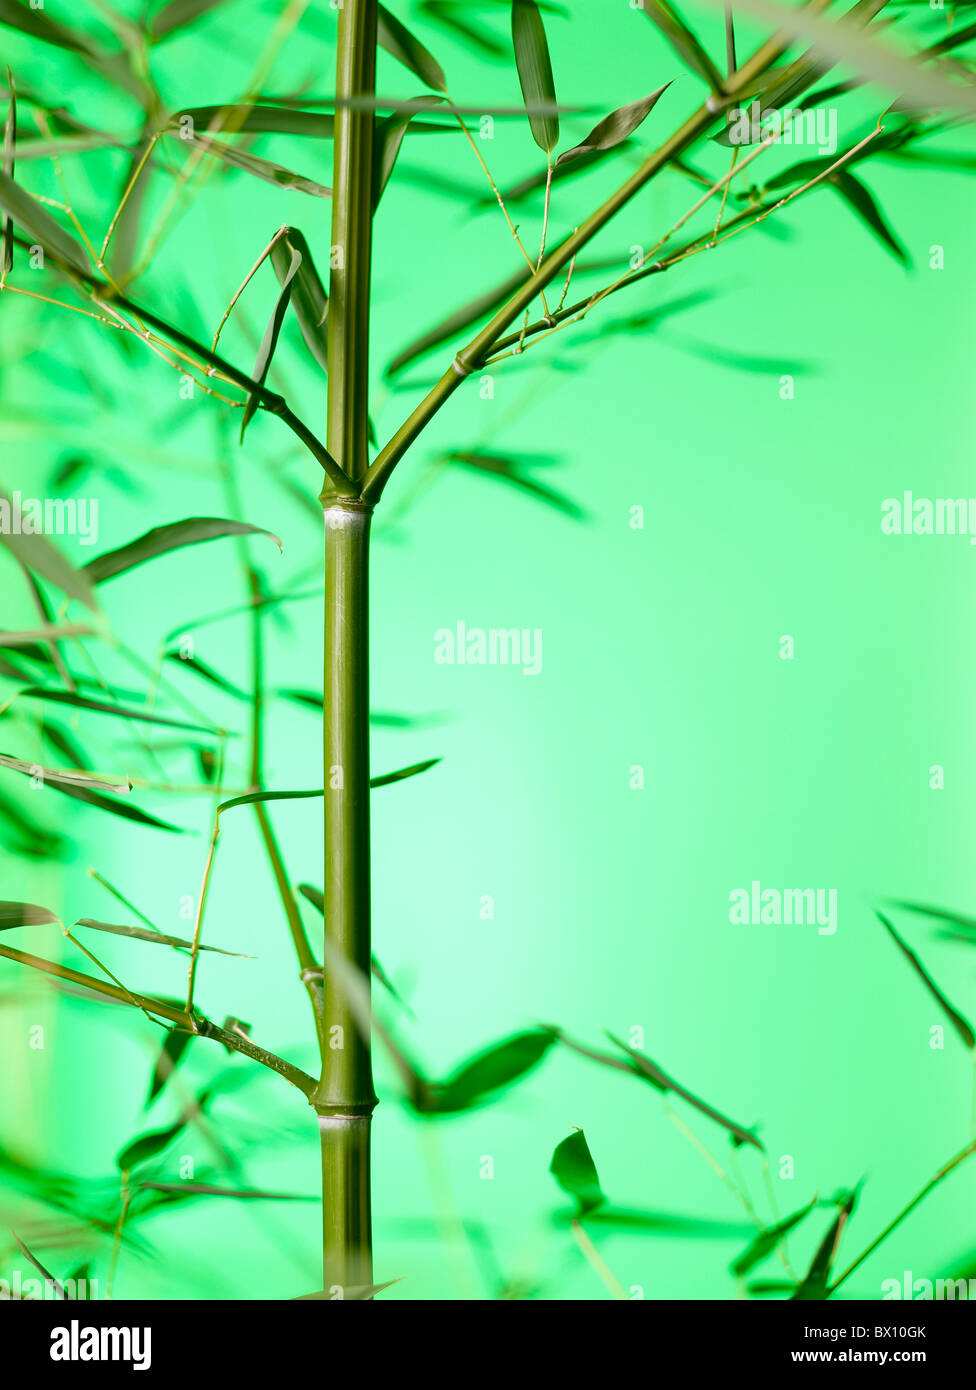 Bamboo stalk vertical - Stock Image